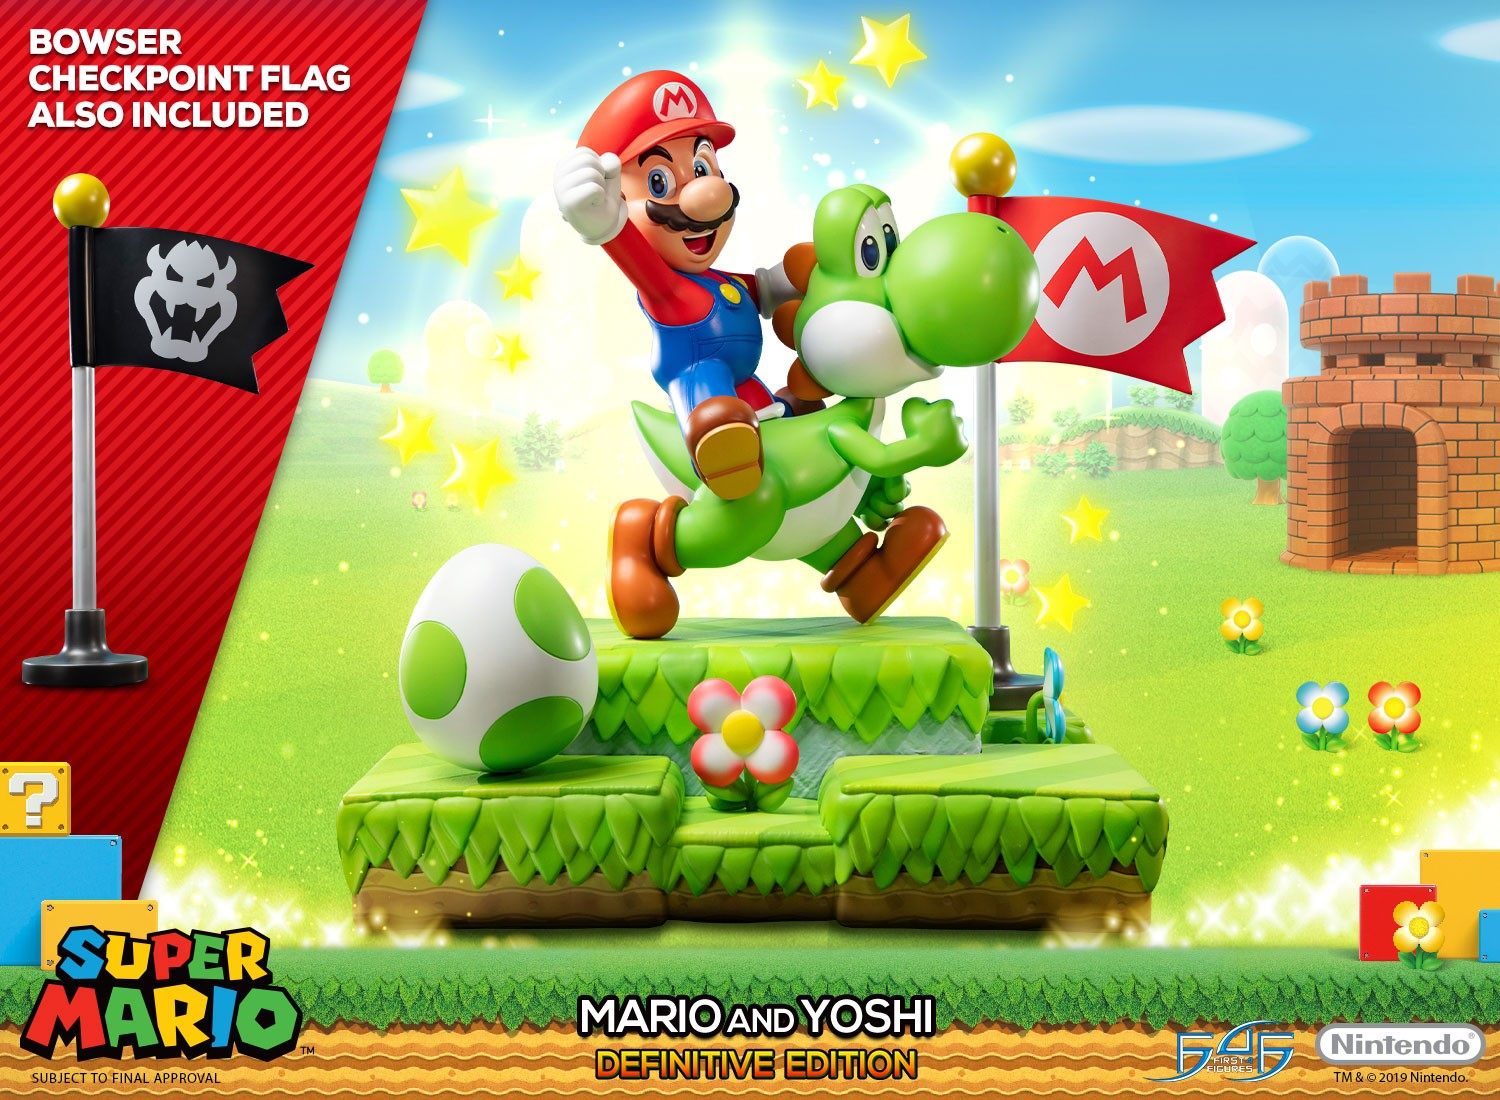 Super Mario – Mario and Yoshi Definitive Edition